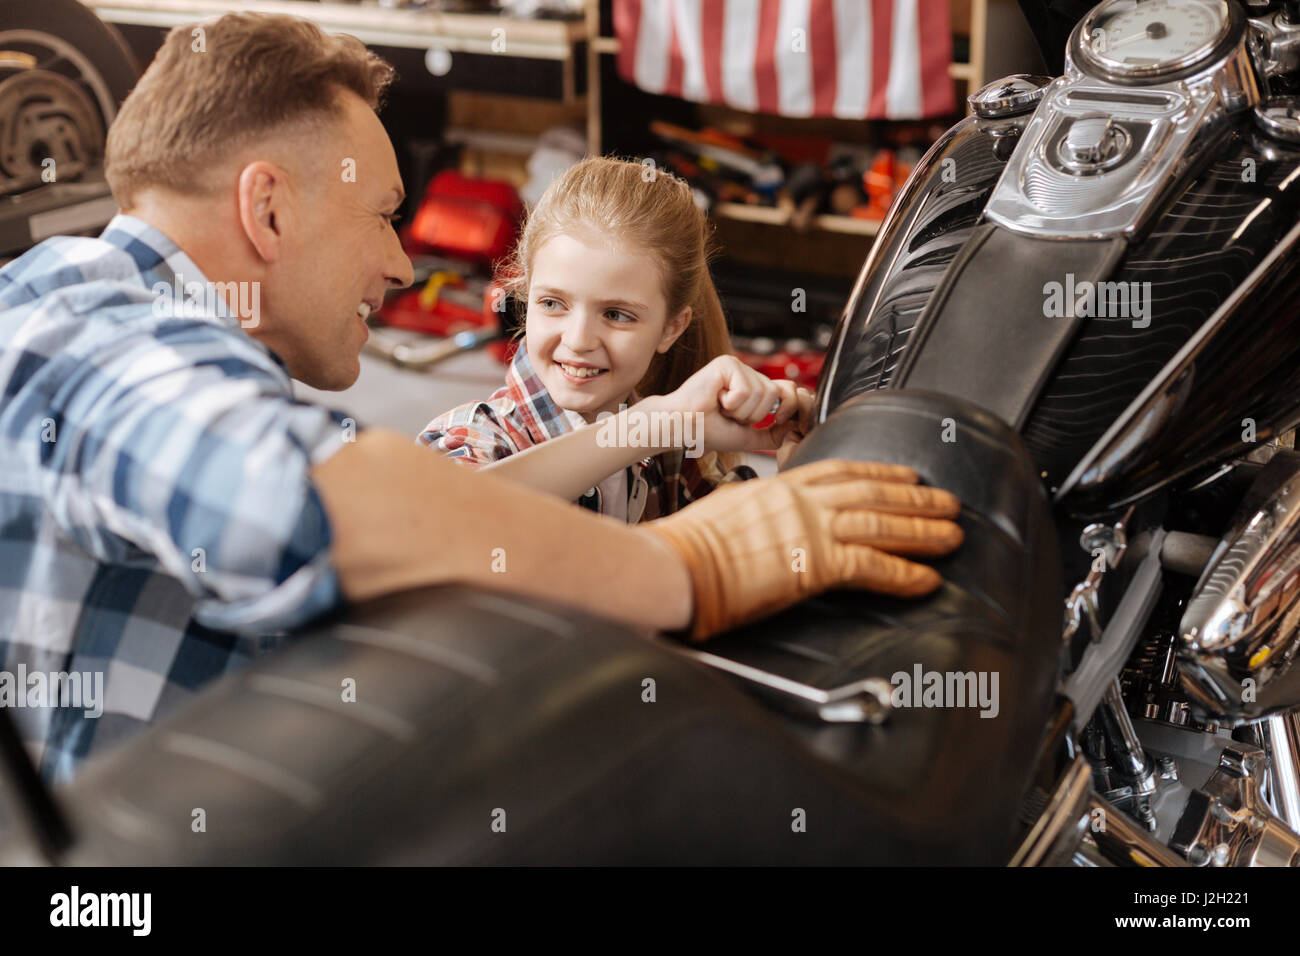 Cool dad teaching his kid some things about bikes - Stock Image